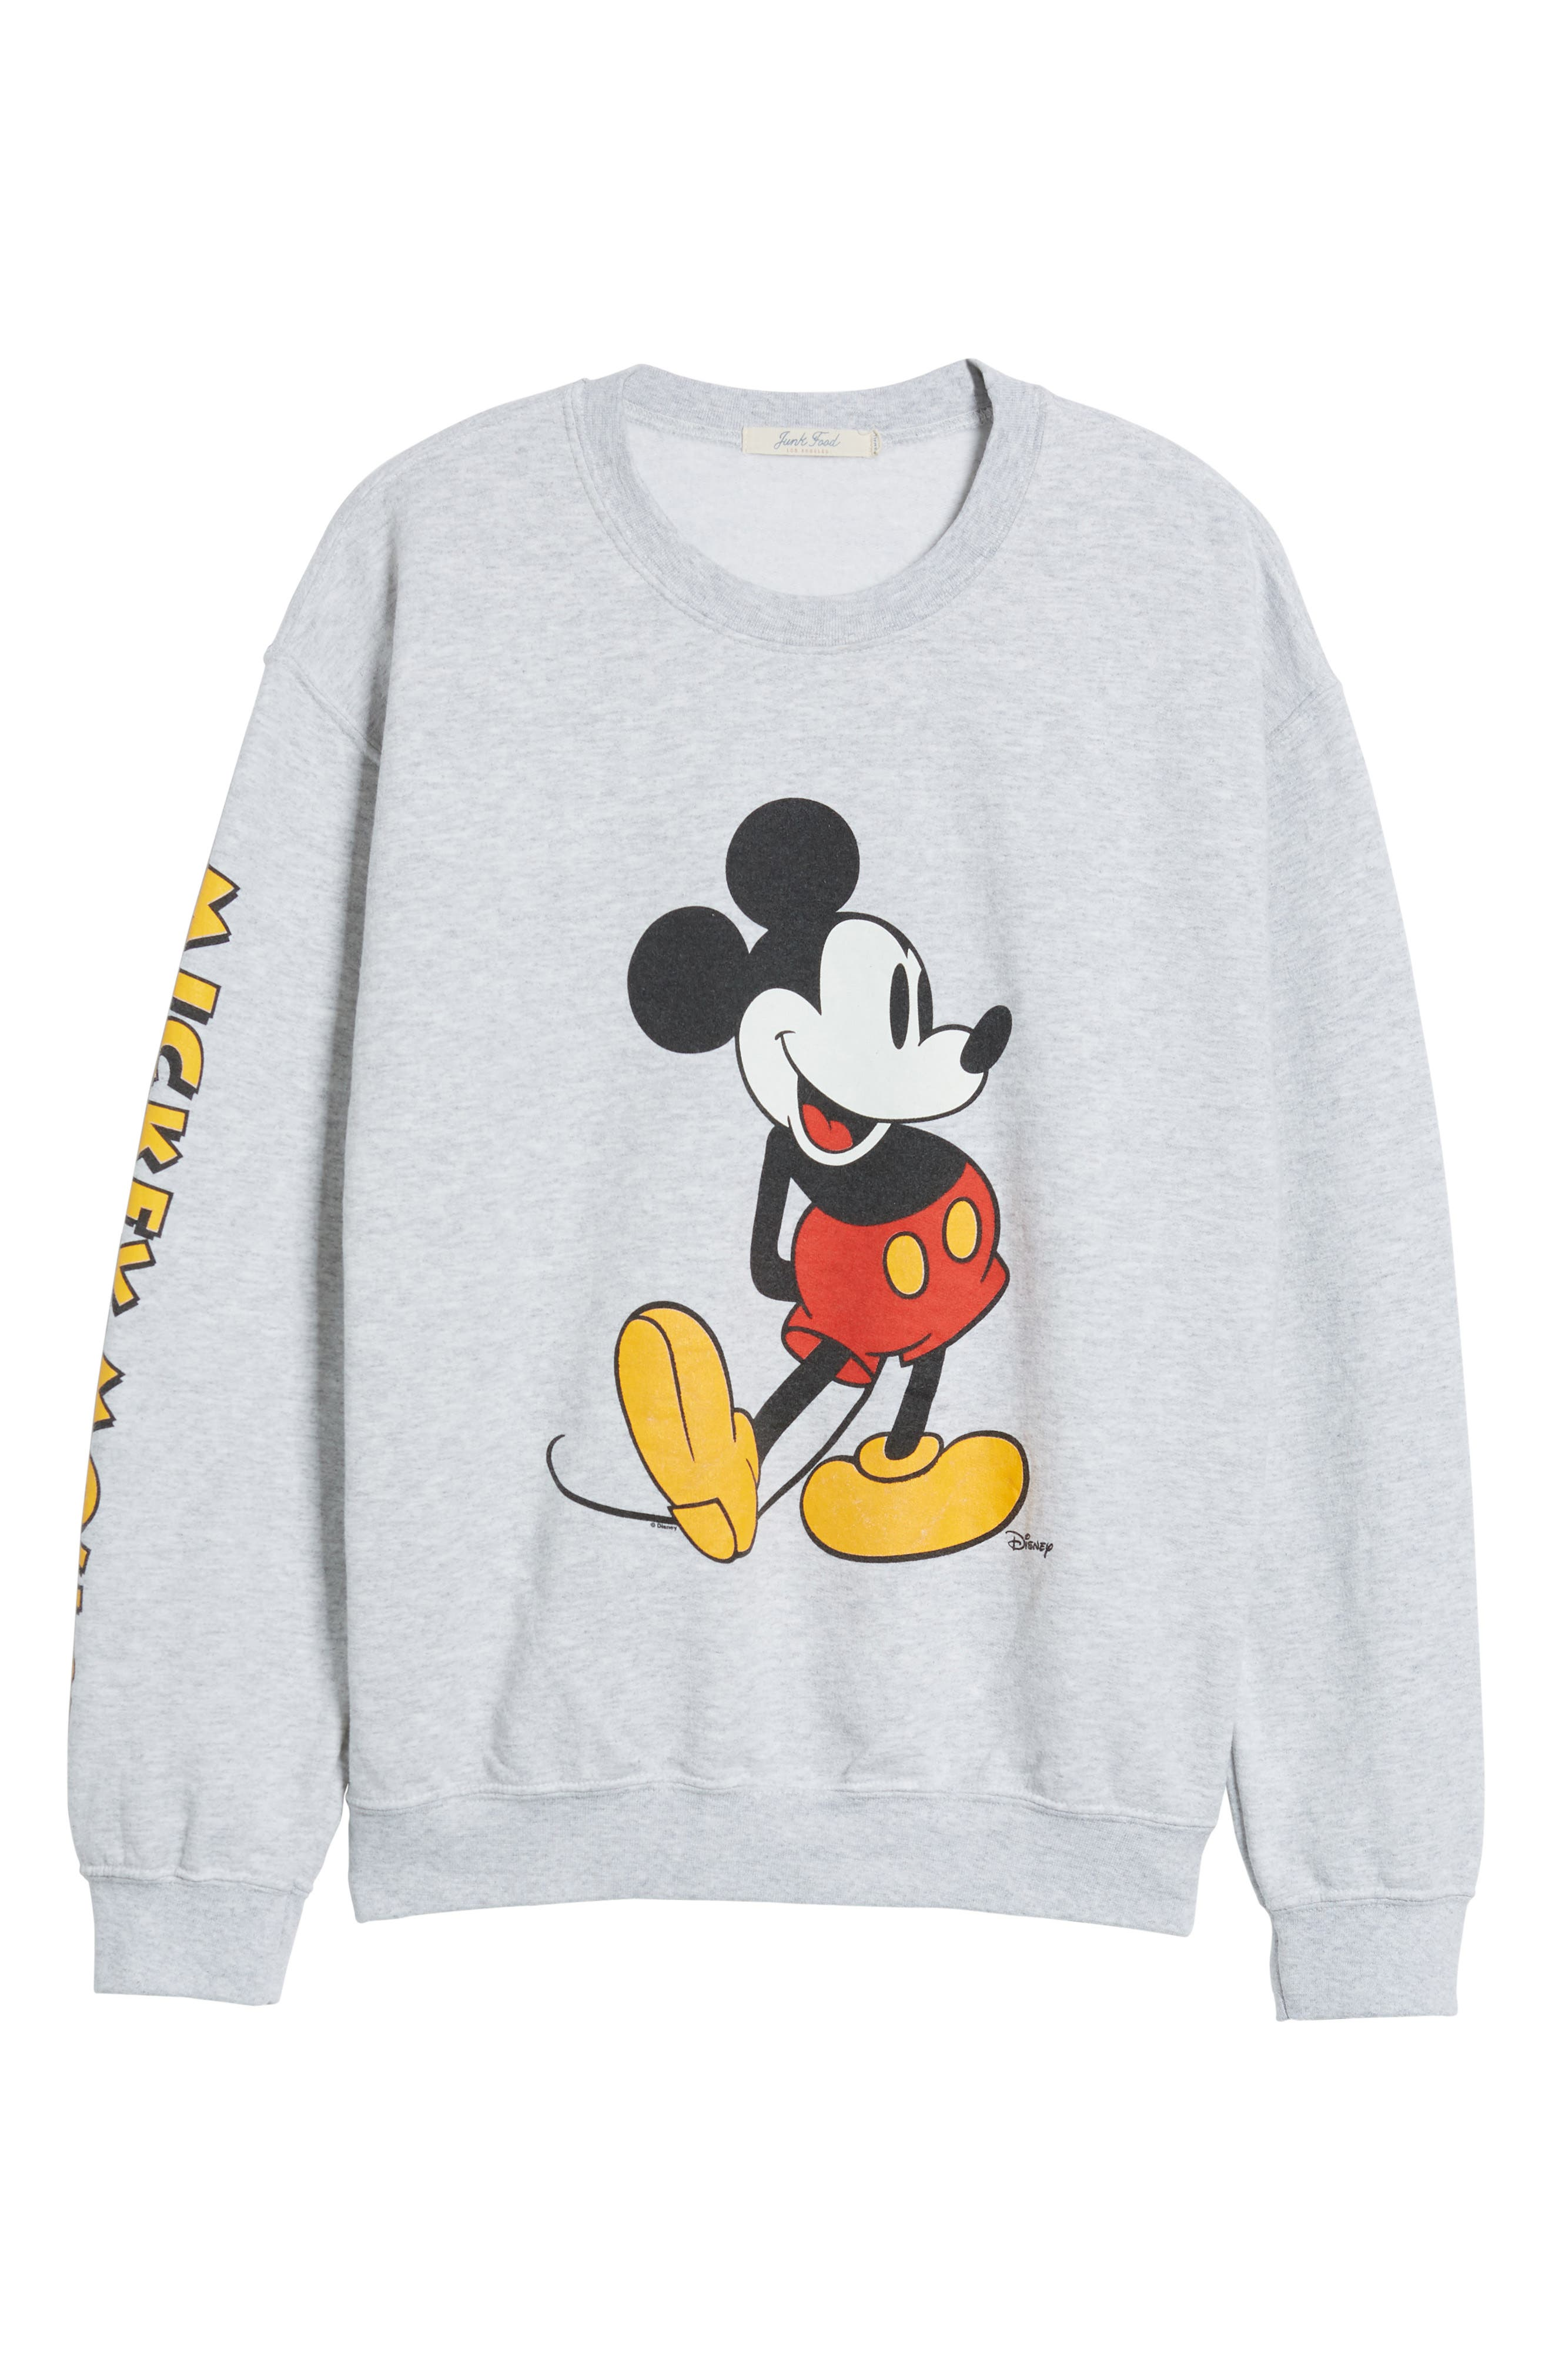 Mickey Mouse Oversize Sweatshirt,                             Alternate thumbnail 7, color,                             Ash Heather